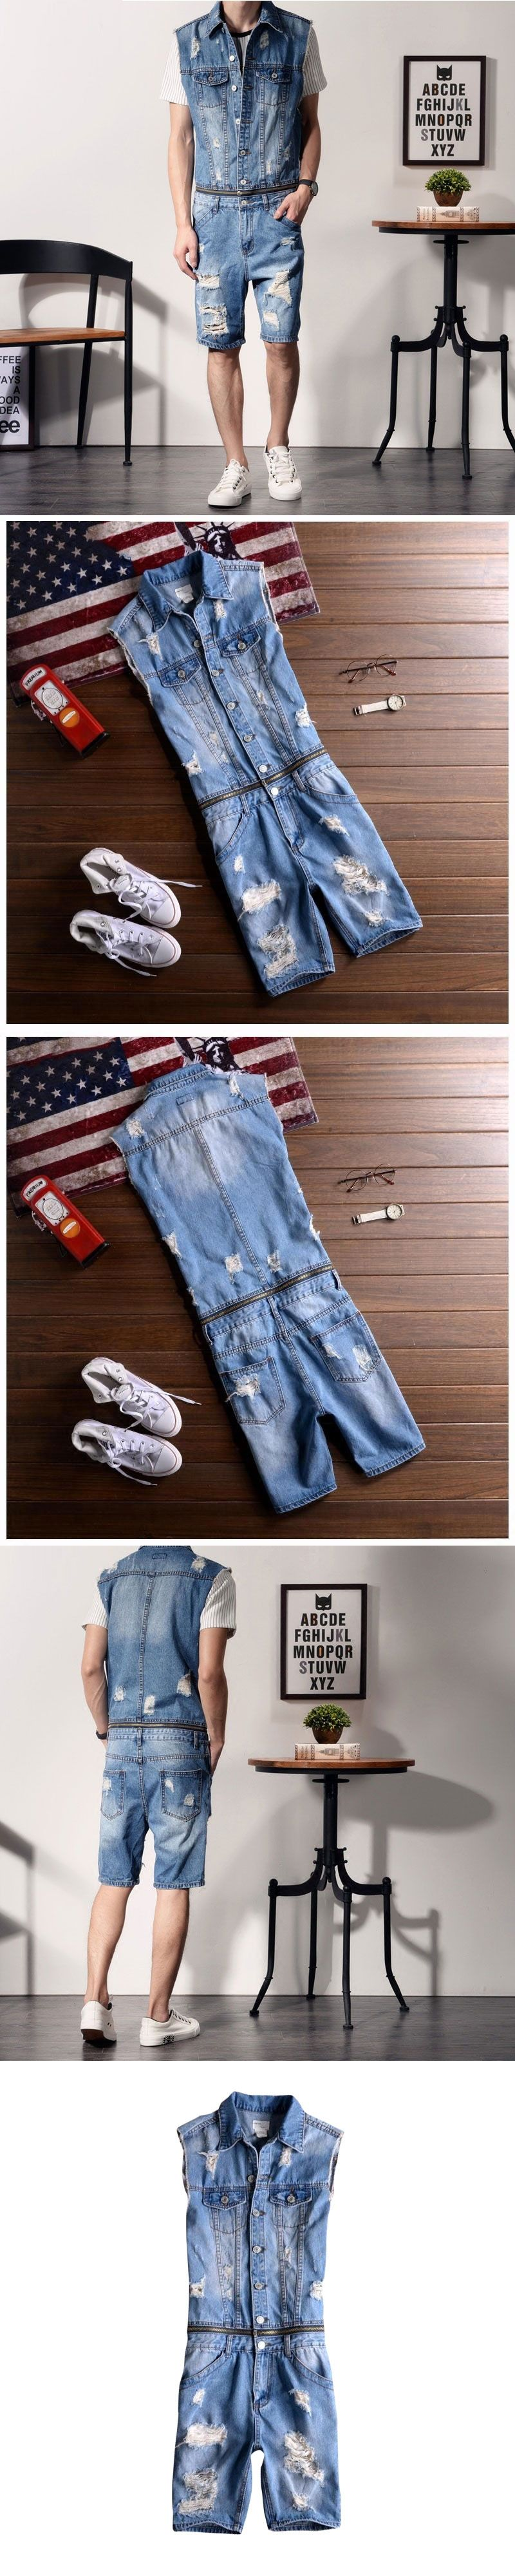 dc149a27aa 2017 New Men s No Sleeve Denim Overalls Casual Shorts Jeans Jumpsuits For  Men With Holes Short